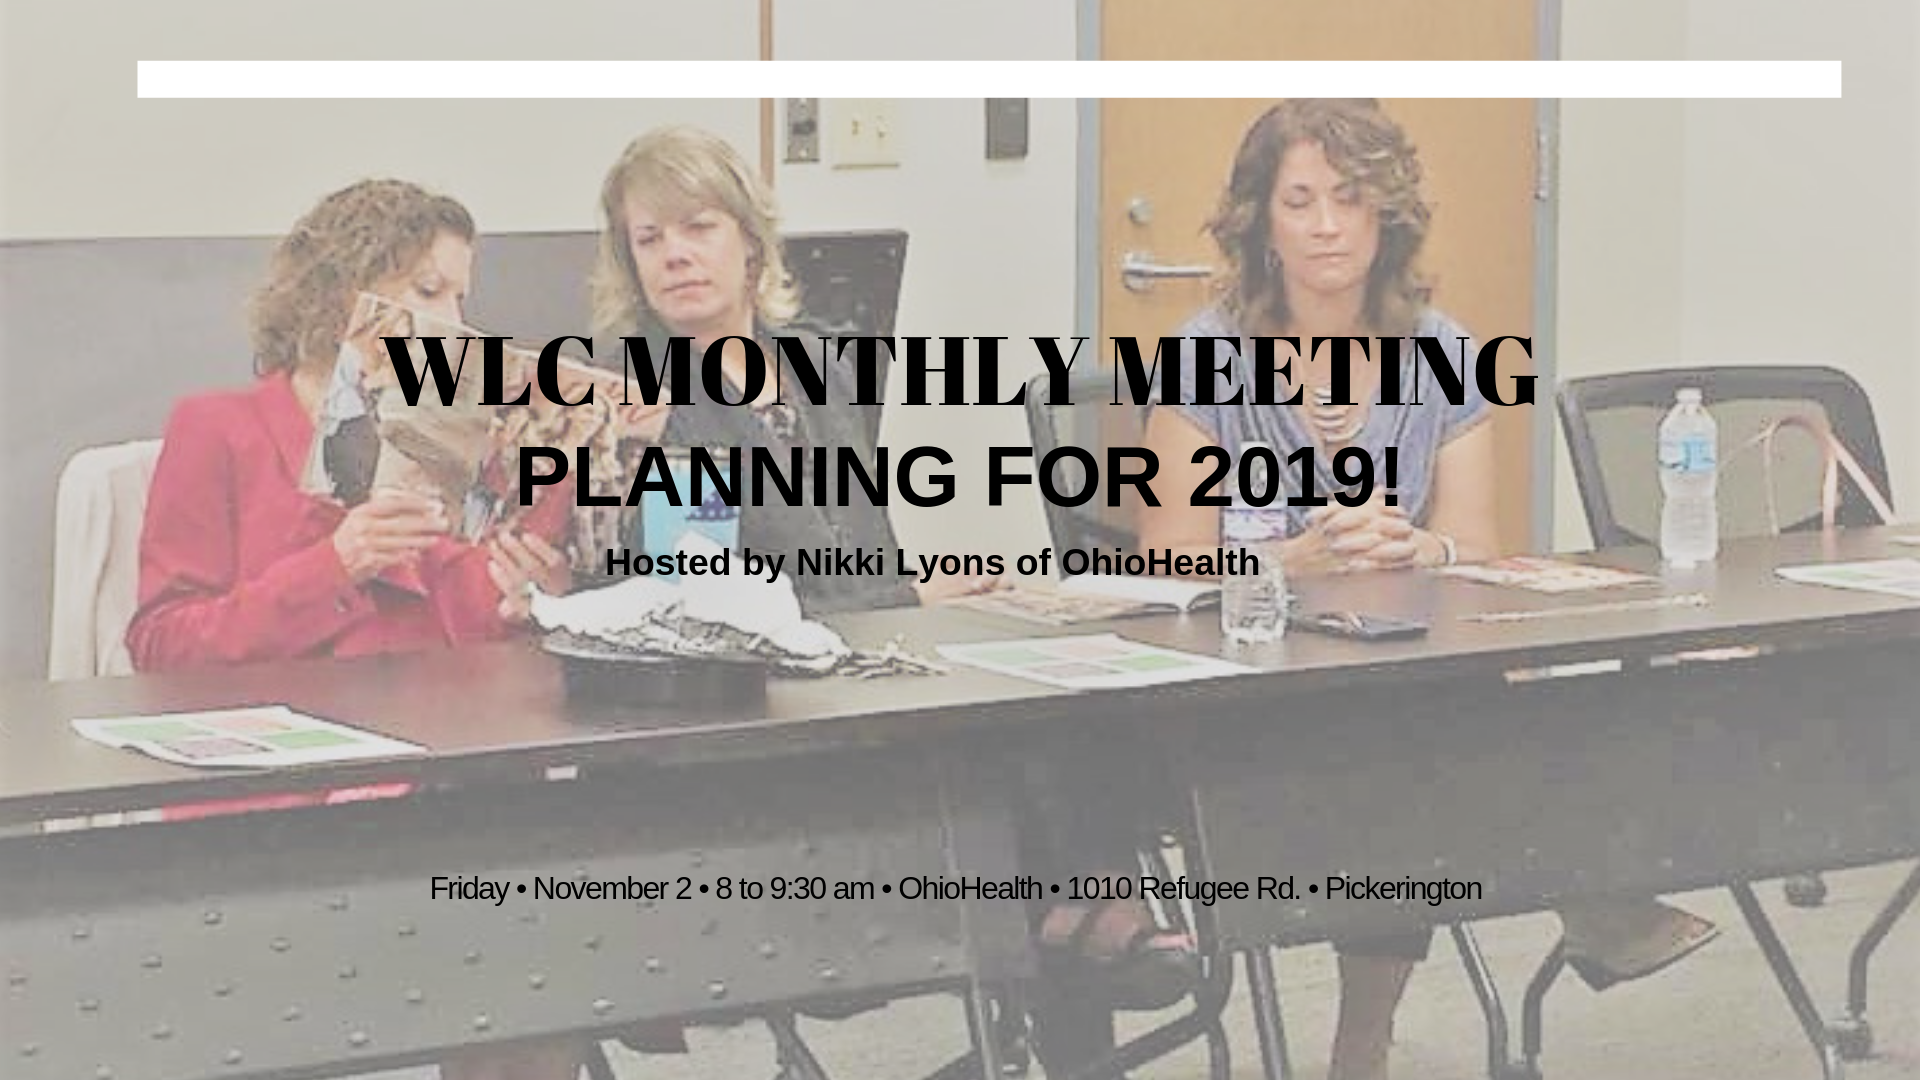 WLC Monthly Meeting